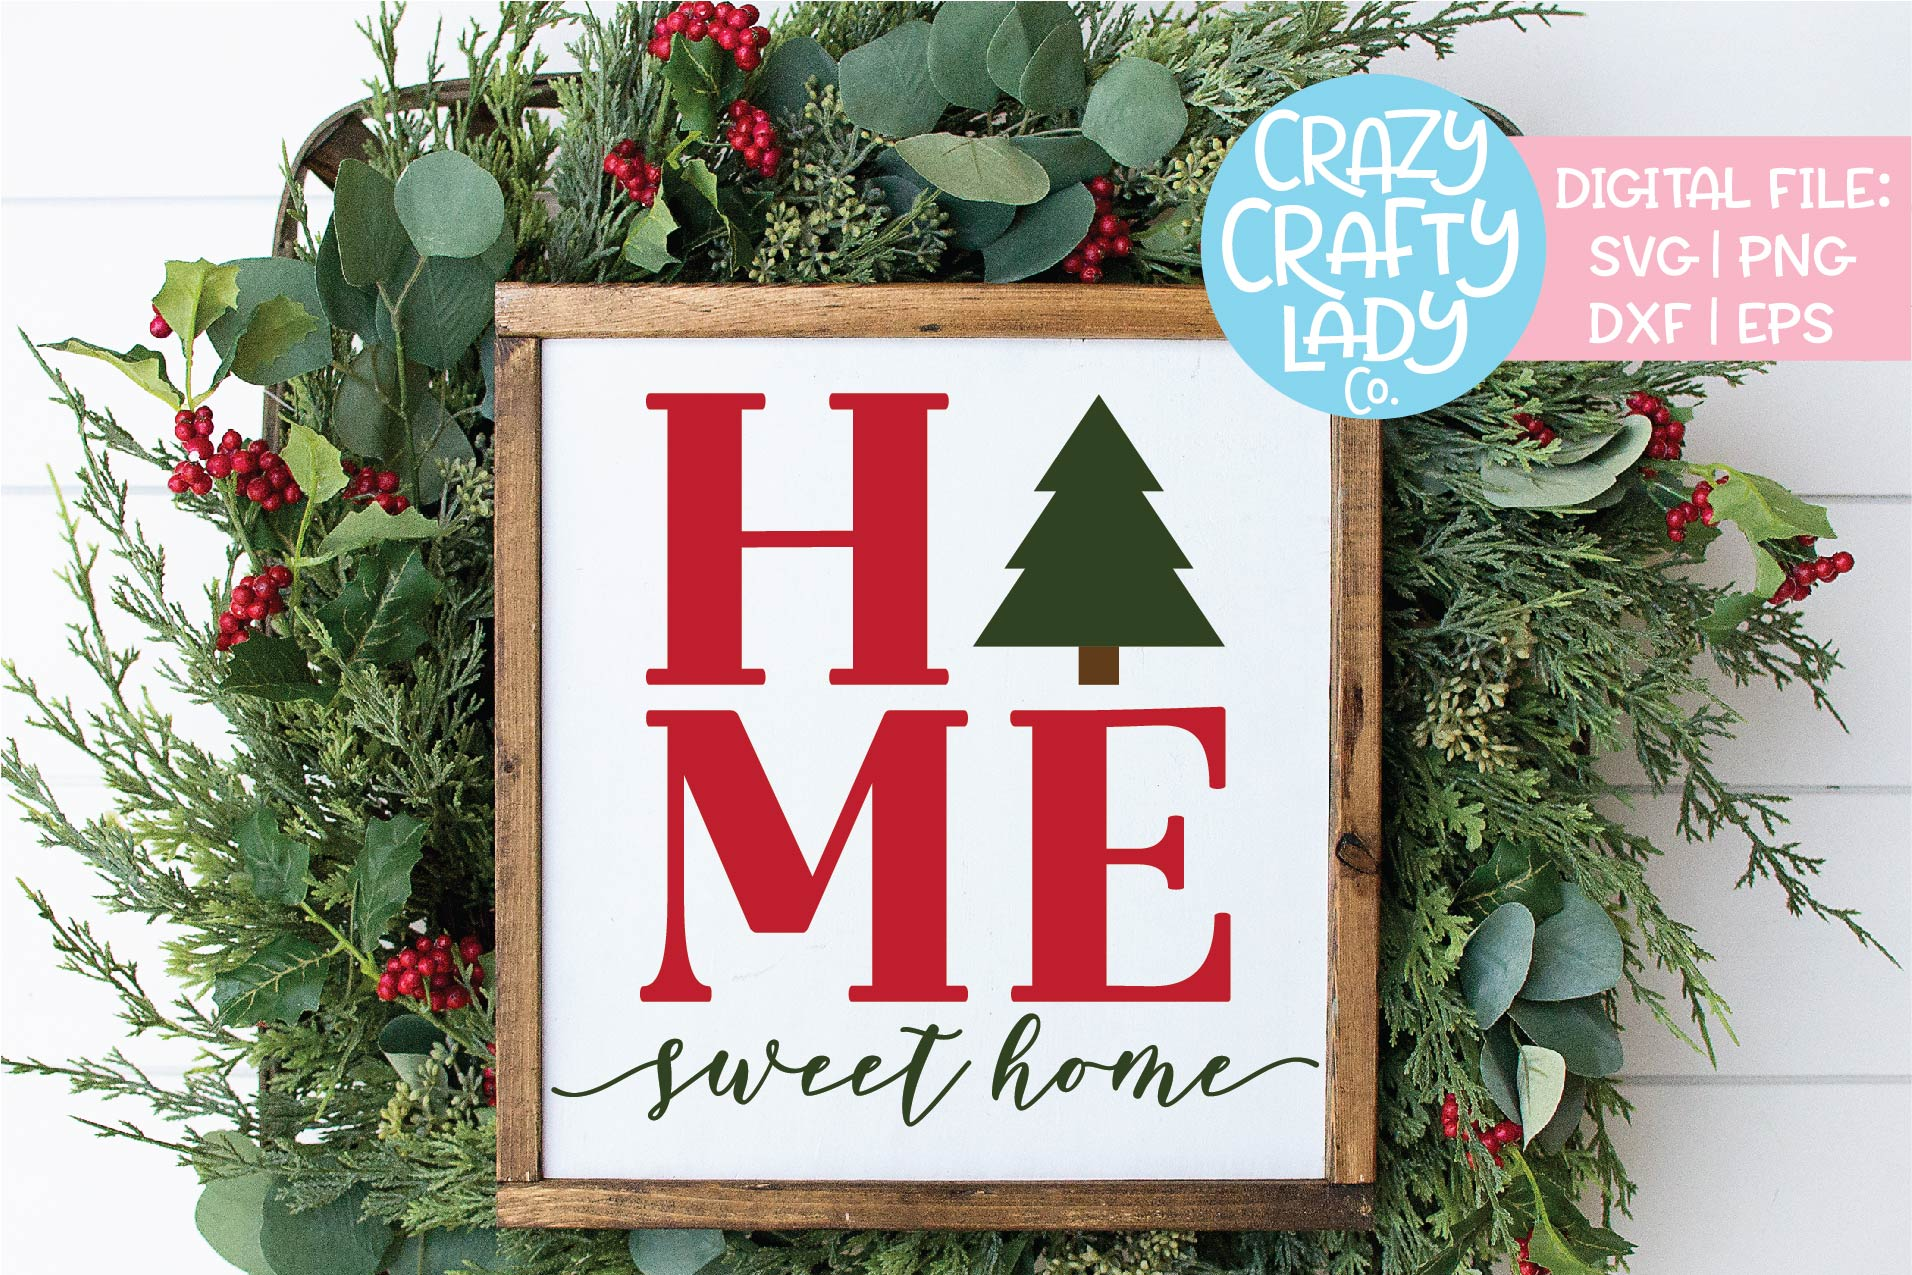 Home Sweet Home Christmas Tree SVG DXF EPS PNG Cut File example image 1